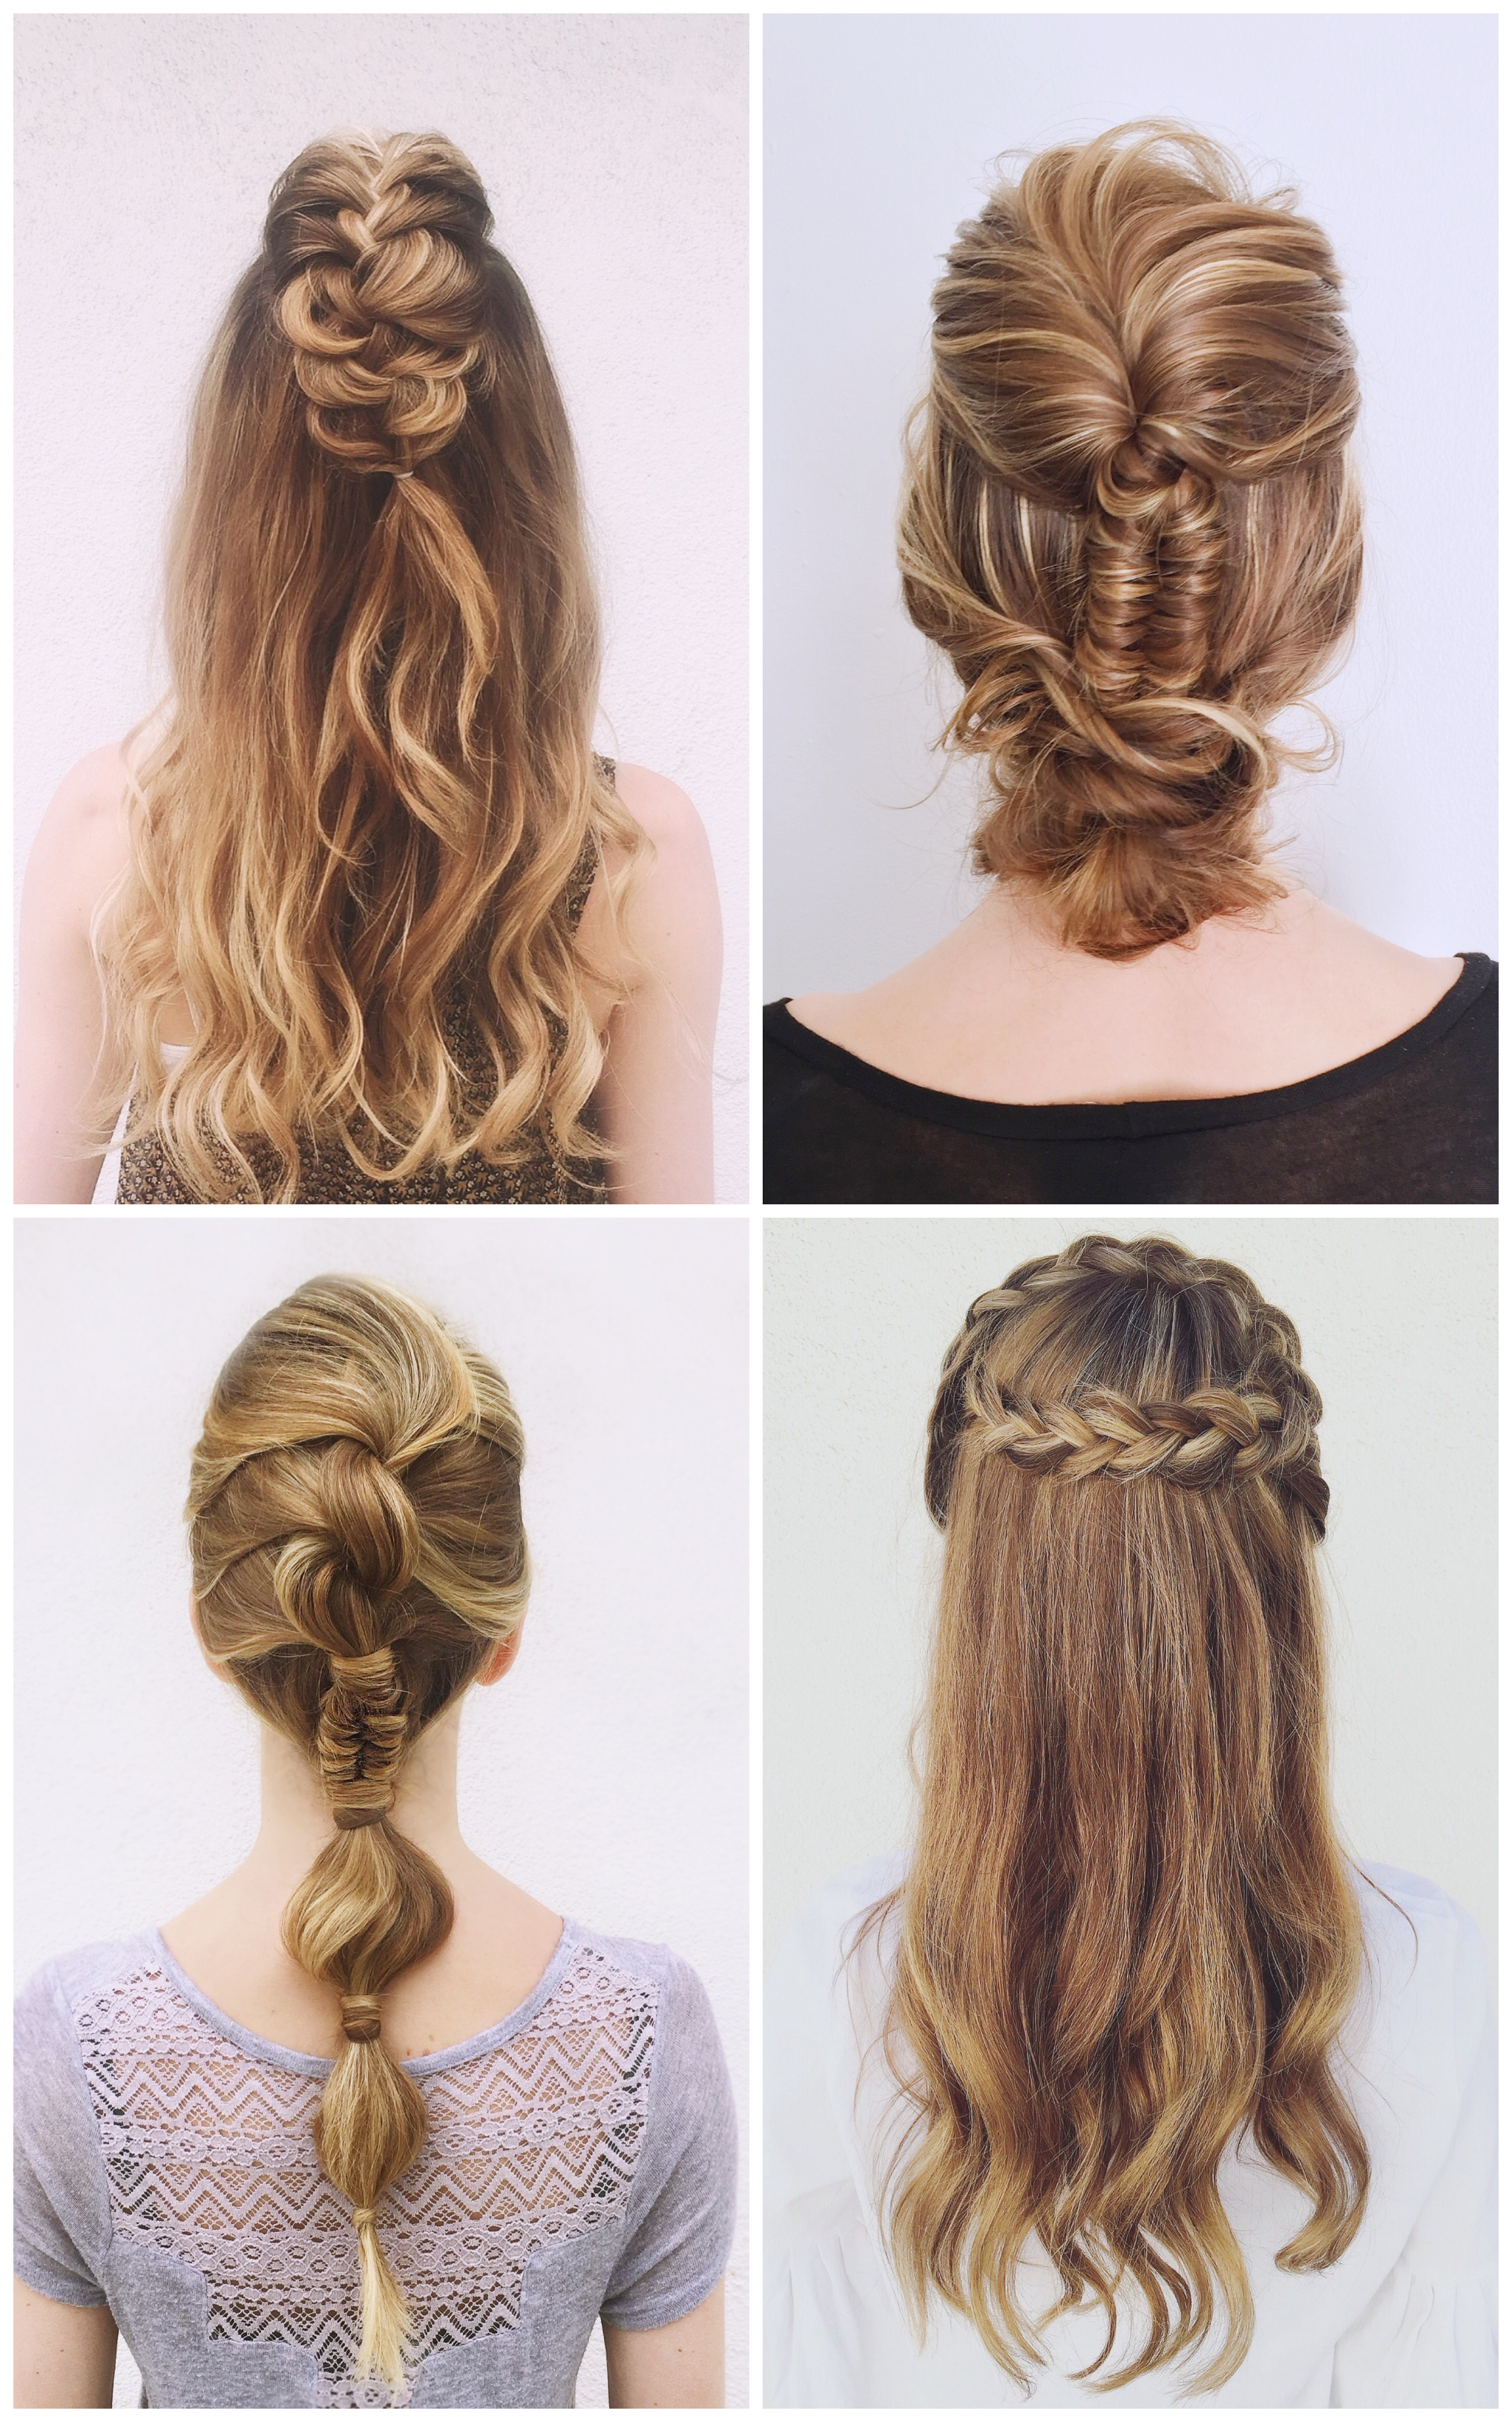 20 Braided Prom Hairstyles For Stylish Girls With Popular Fancy Knot Prom Hairstyles (Gallery 3 of 20)